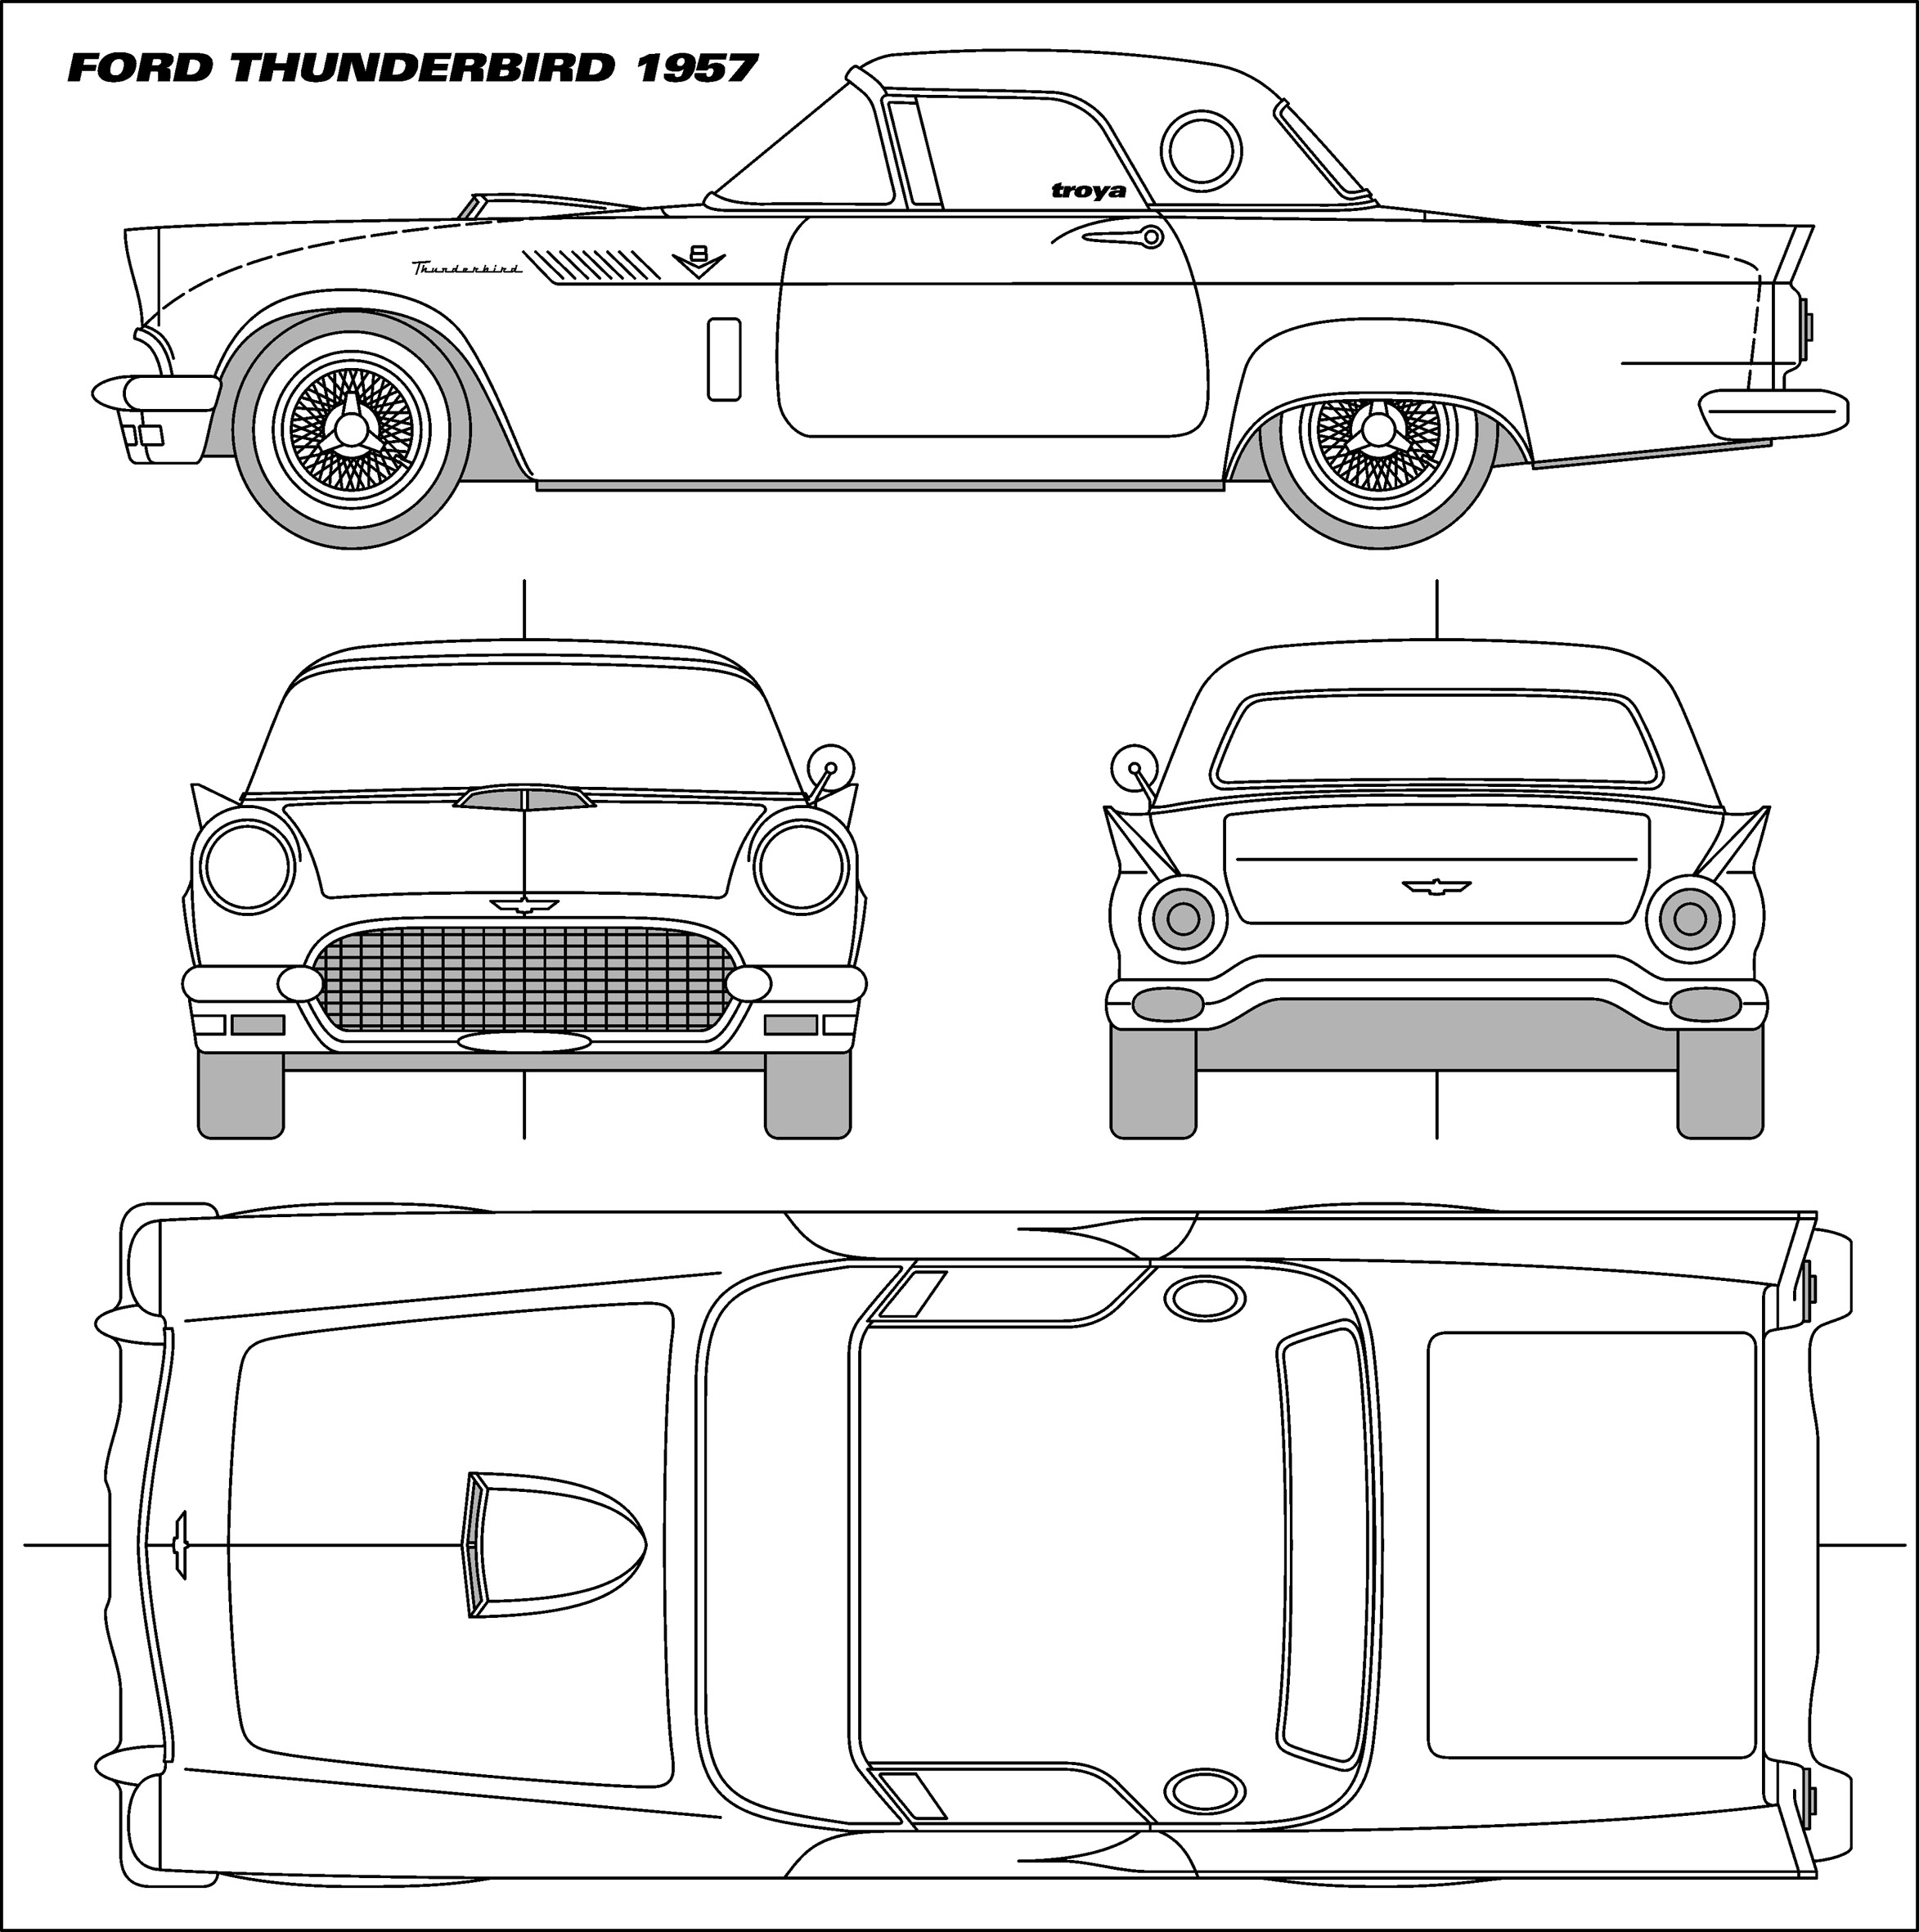 1959 Lincoln Wiring Diagram also Town Car Fuse Box Besides 1999 Lincoln together with 280z Wiper Motor Wiring Diagram further Columbia Par Car Ignition Wiring Diagram further 1955 Thunderbird Wiring Diagram 11 1960 Dash 57. on wiring diagram 1958 studebaker